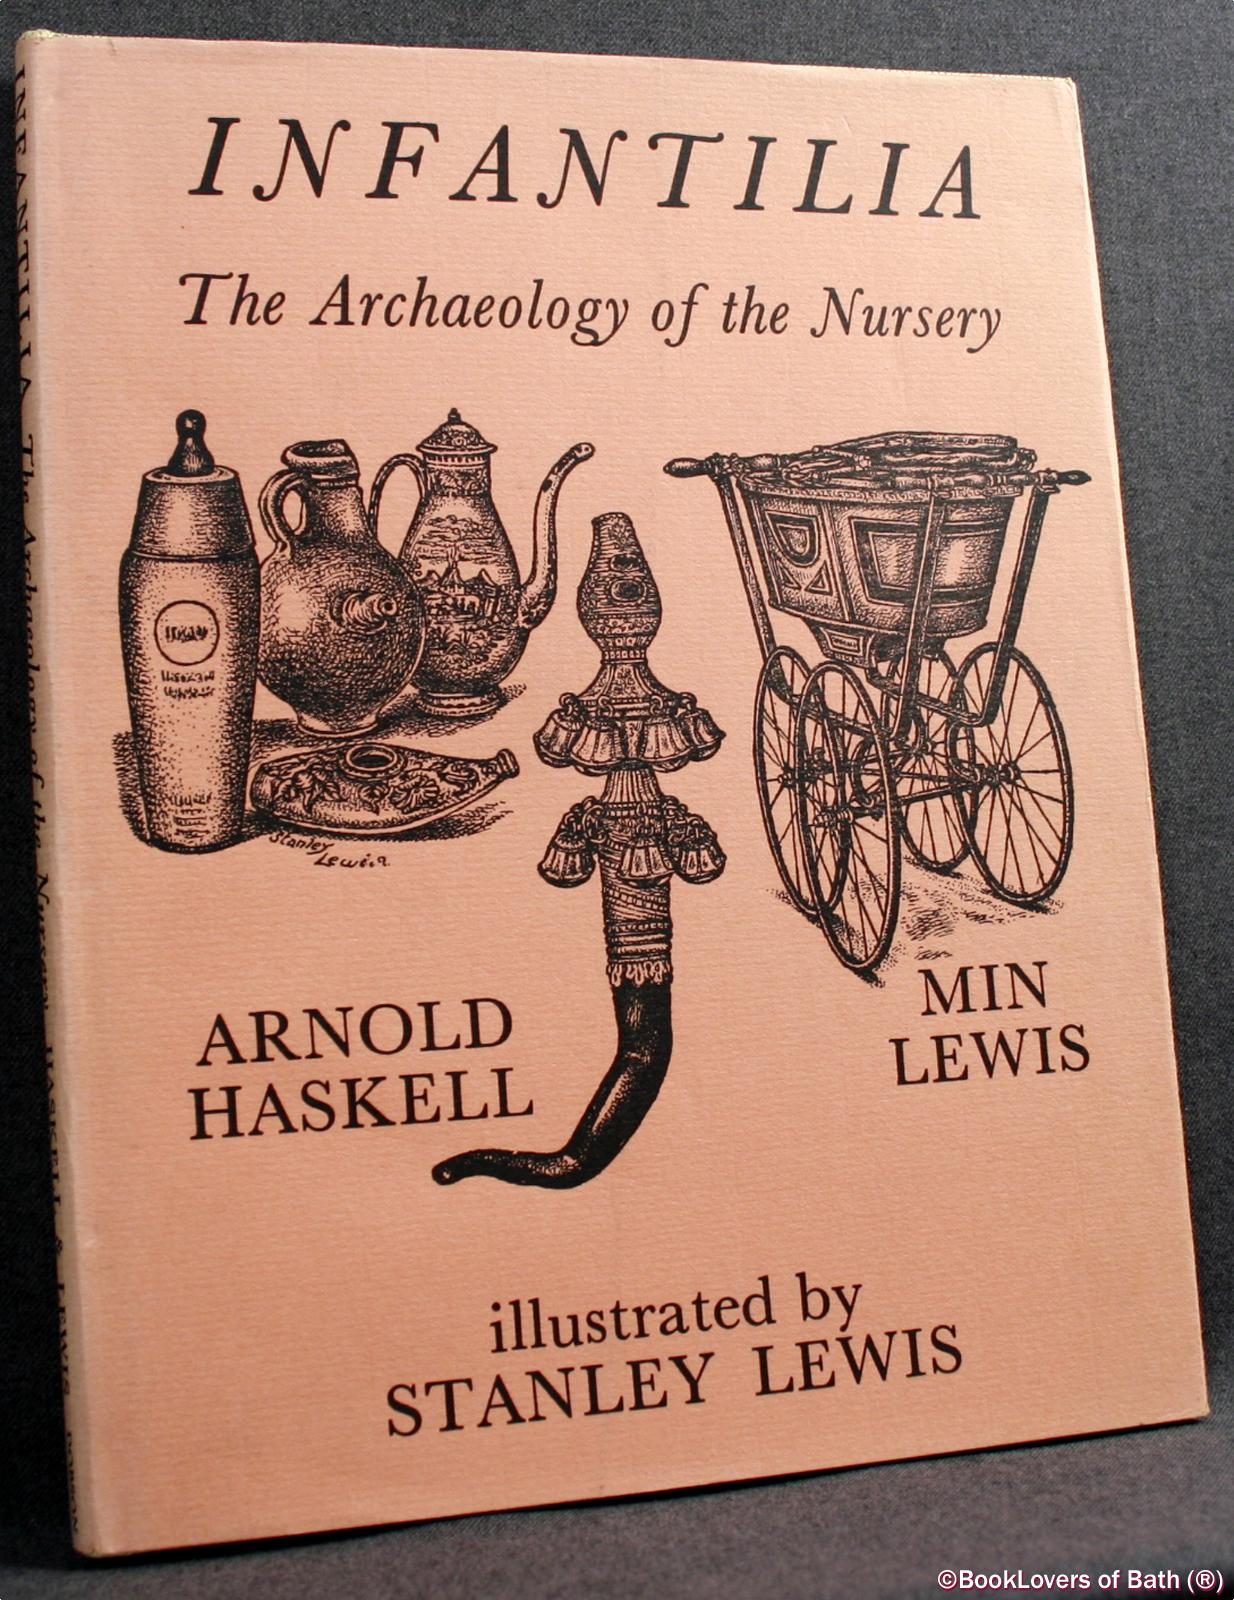 Infantilia: The Archaeology of the Nursery - Arnold Haskell & Min Lewis